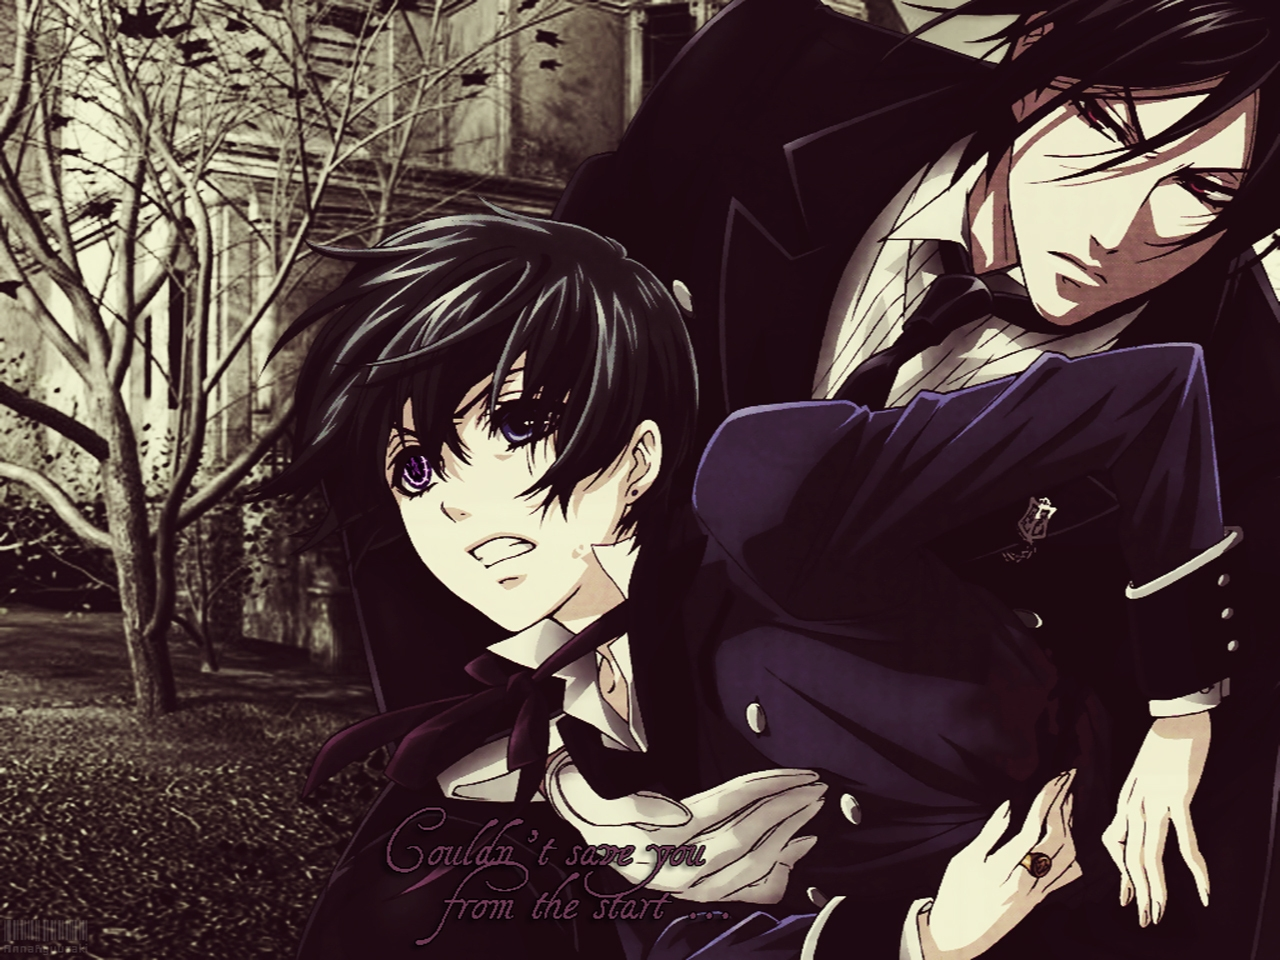 Kuroshitsuji wallpaper Black Butler fanart Ciel Phantomhive and Sebastian Michaelis on the forest mansion background Couldnt save you from the start - Couldn't save you... kuroshitsuji-black-butler-yaoi Yaoi desktop wallpapers Sebastian Michaelis Demon Ciel Phantomhive - fanarts on yaoi-online.com